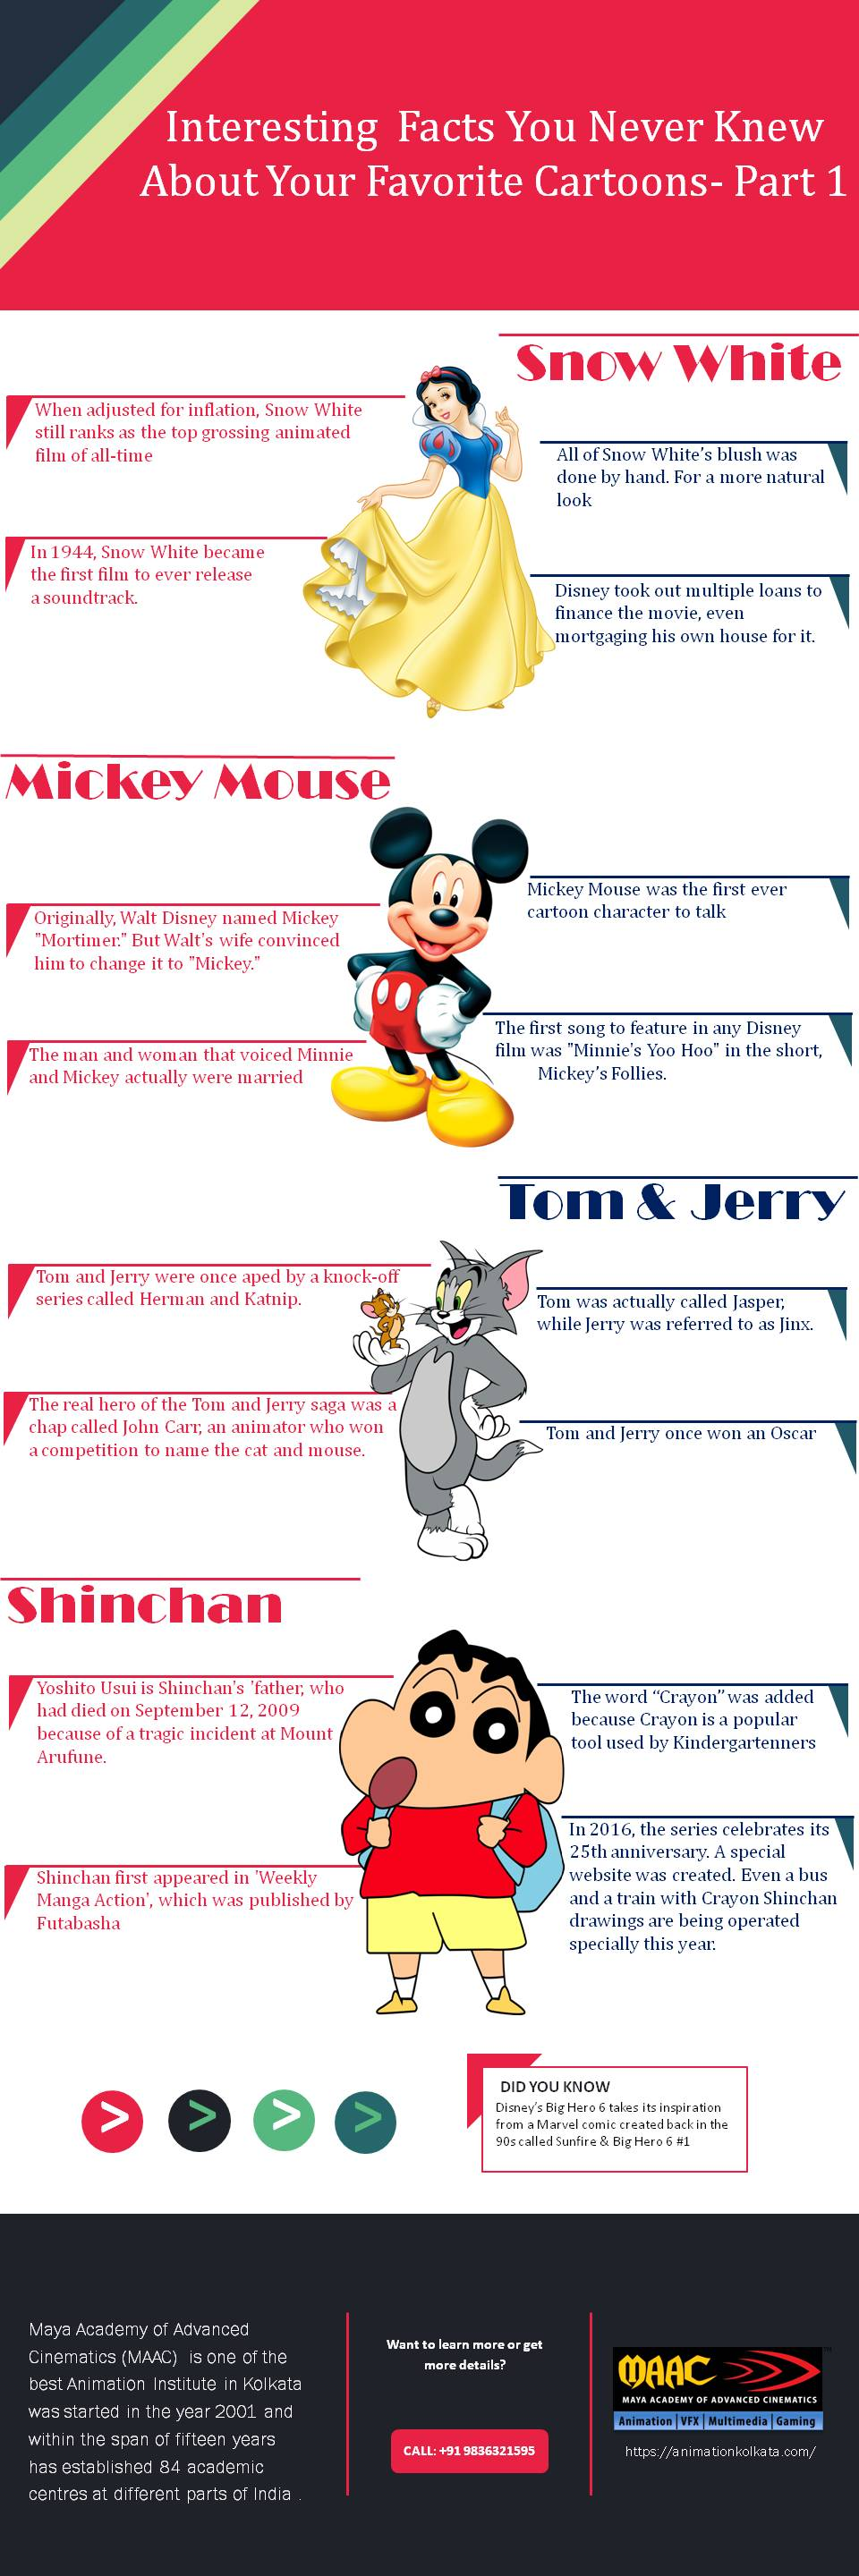 Interesting facts about cartoons